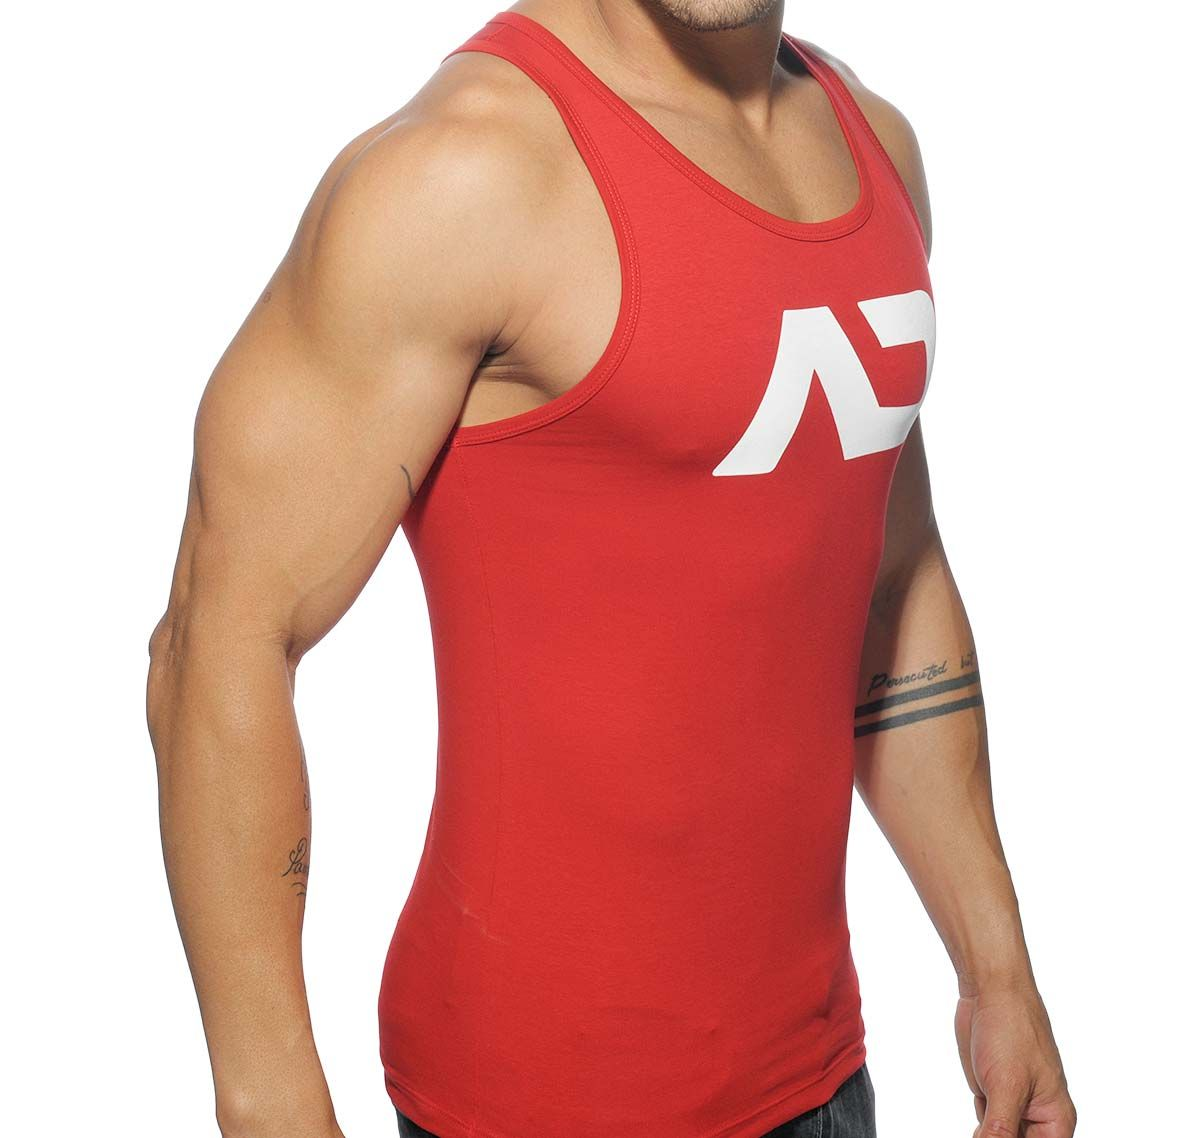 Addicted Sportshirt BASIC AD TANK TOP AD457, rot